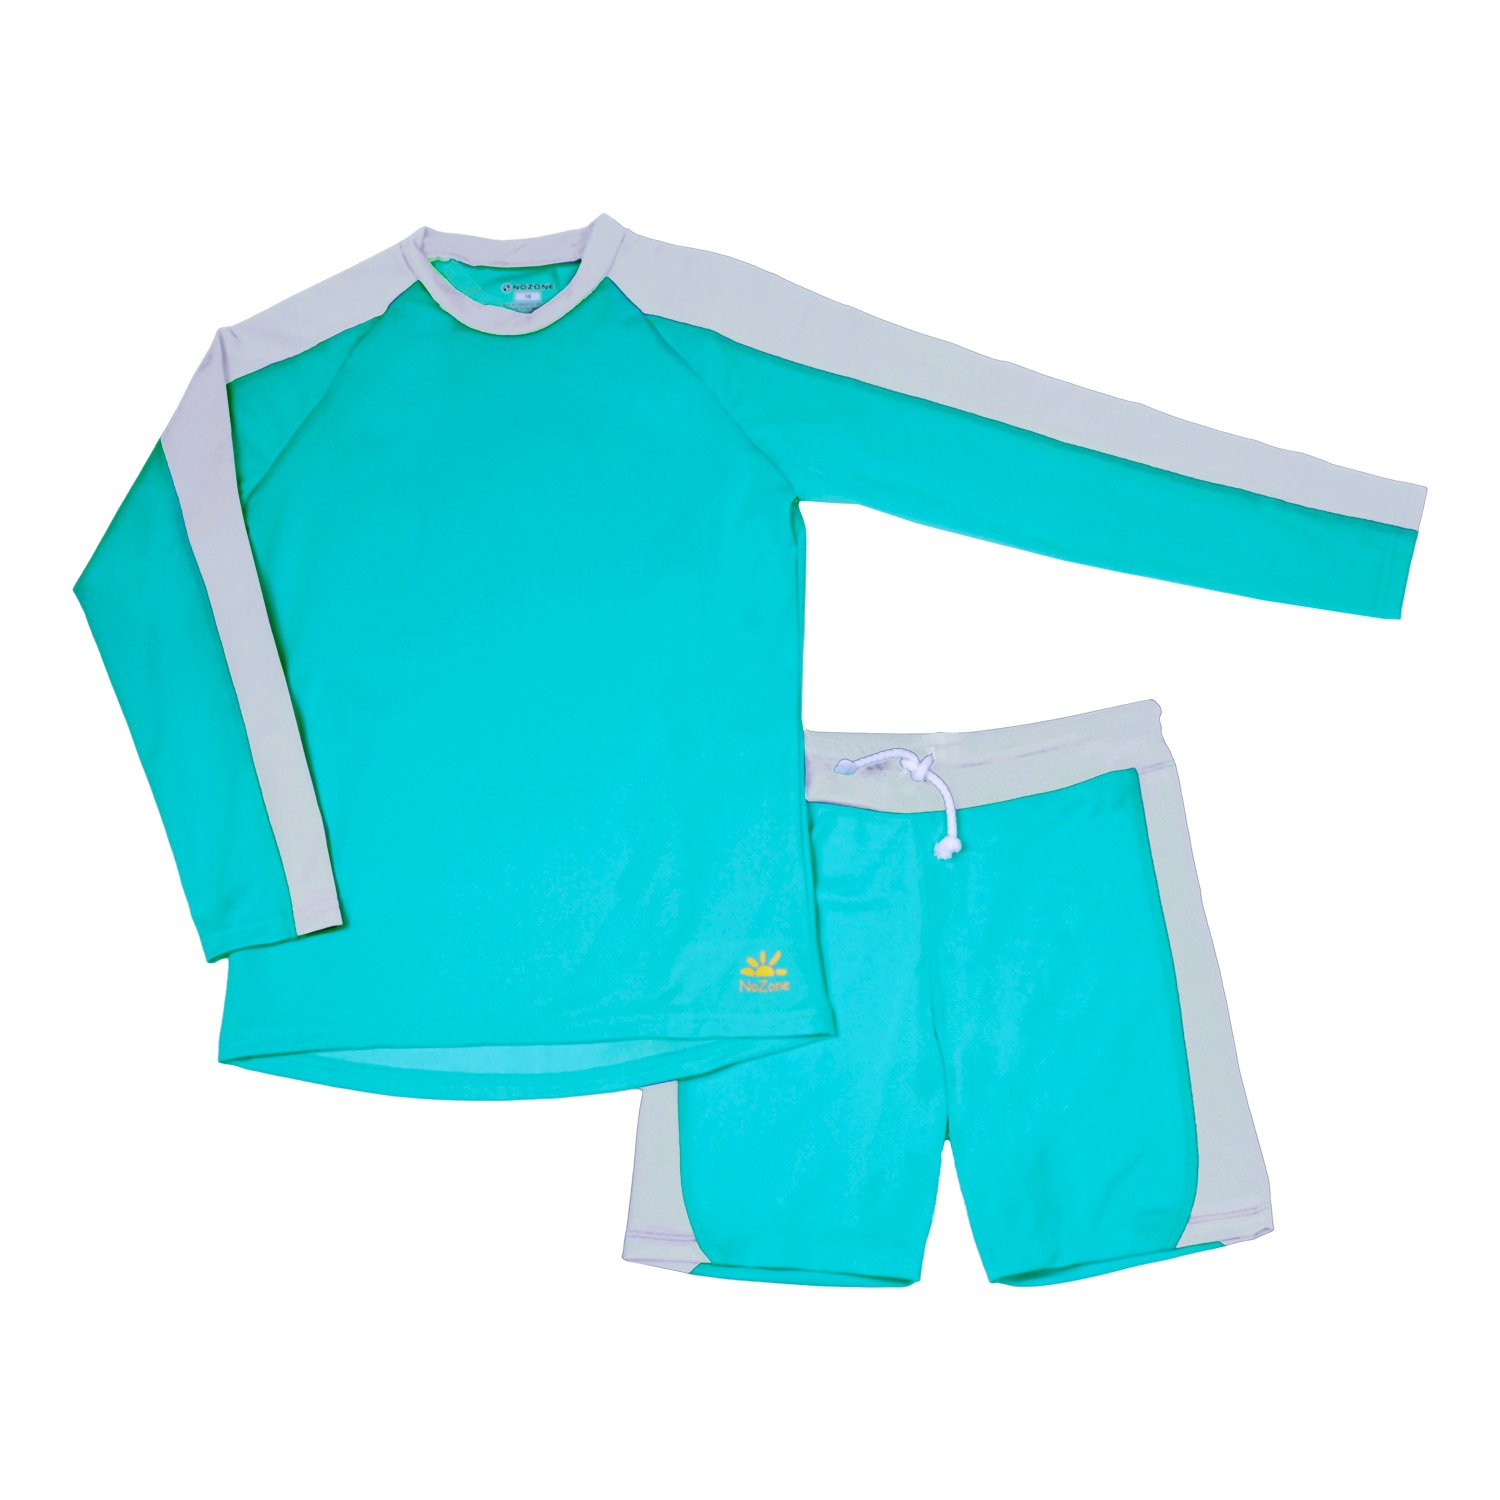 Nozone Laguna Sun Protective Boys Two Piece Swimsuit in Turquoise//Ash Size 10